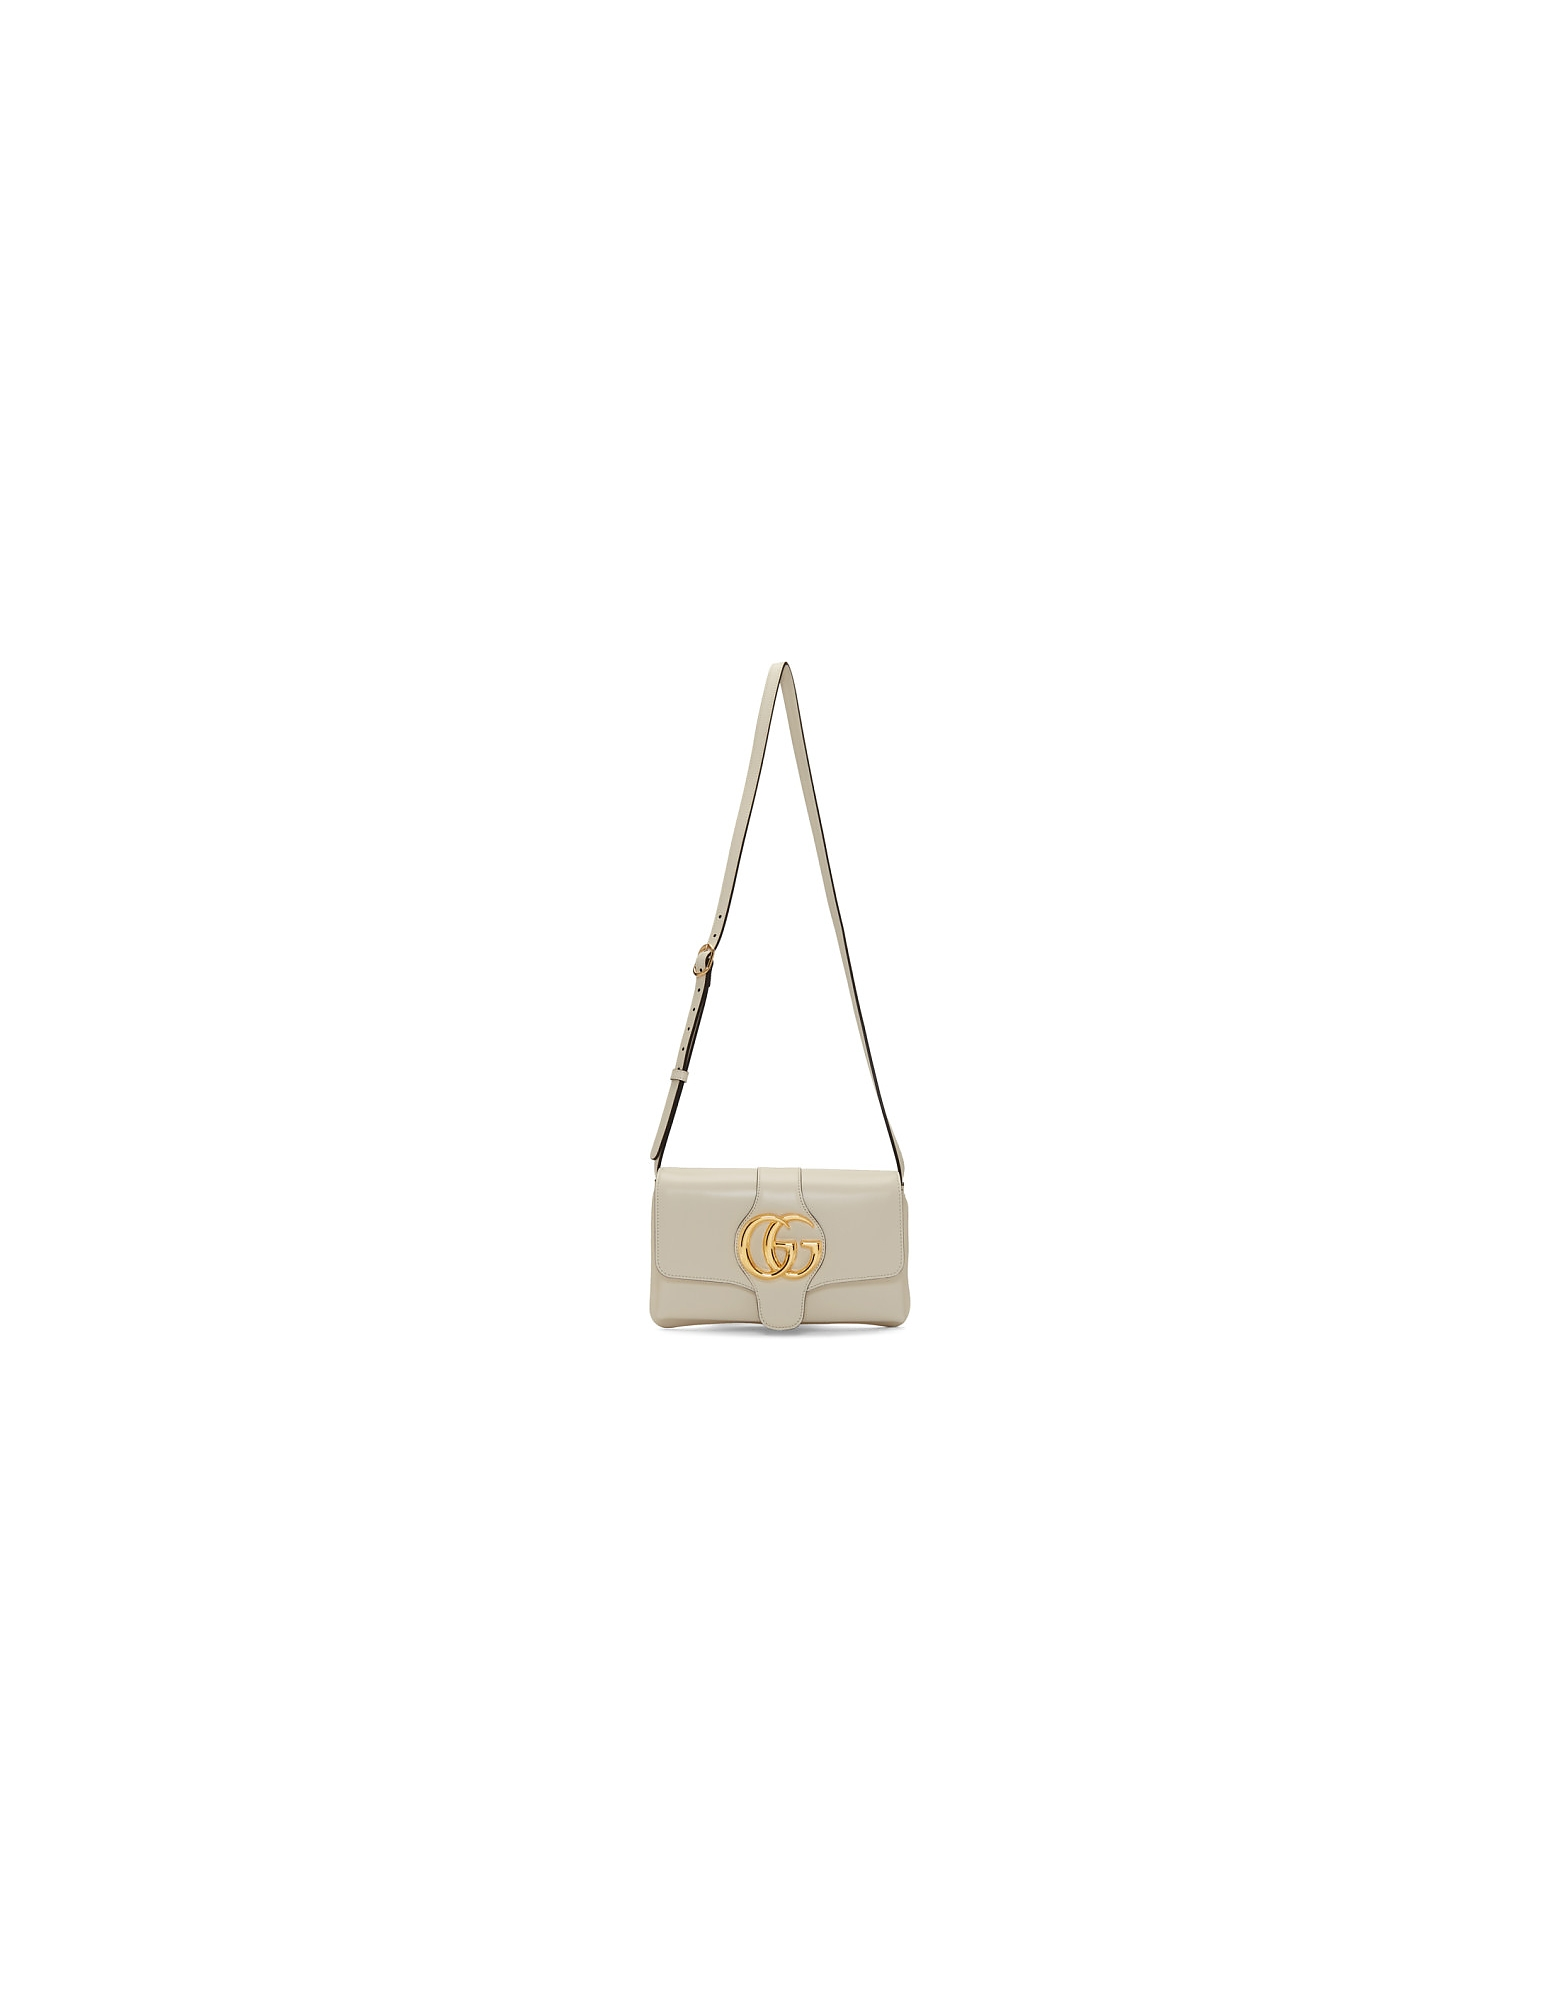 Gucci Designer Handbags, White Small Arli Shoulder Bag